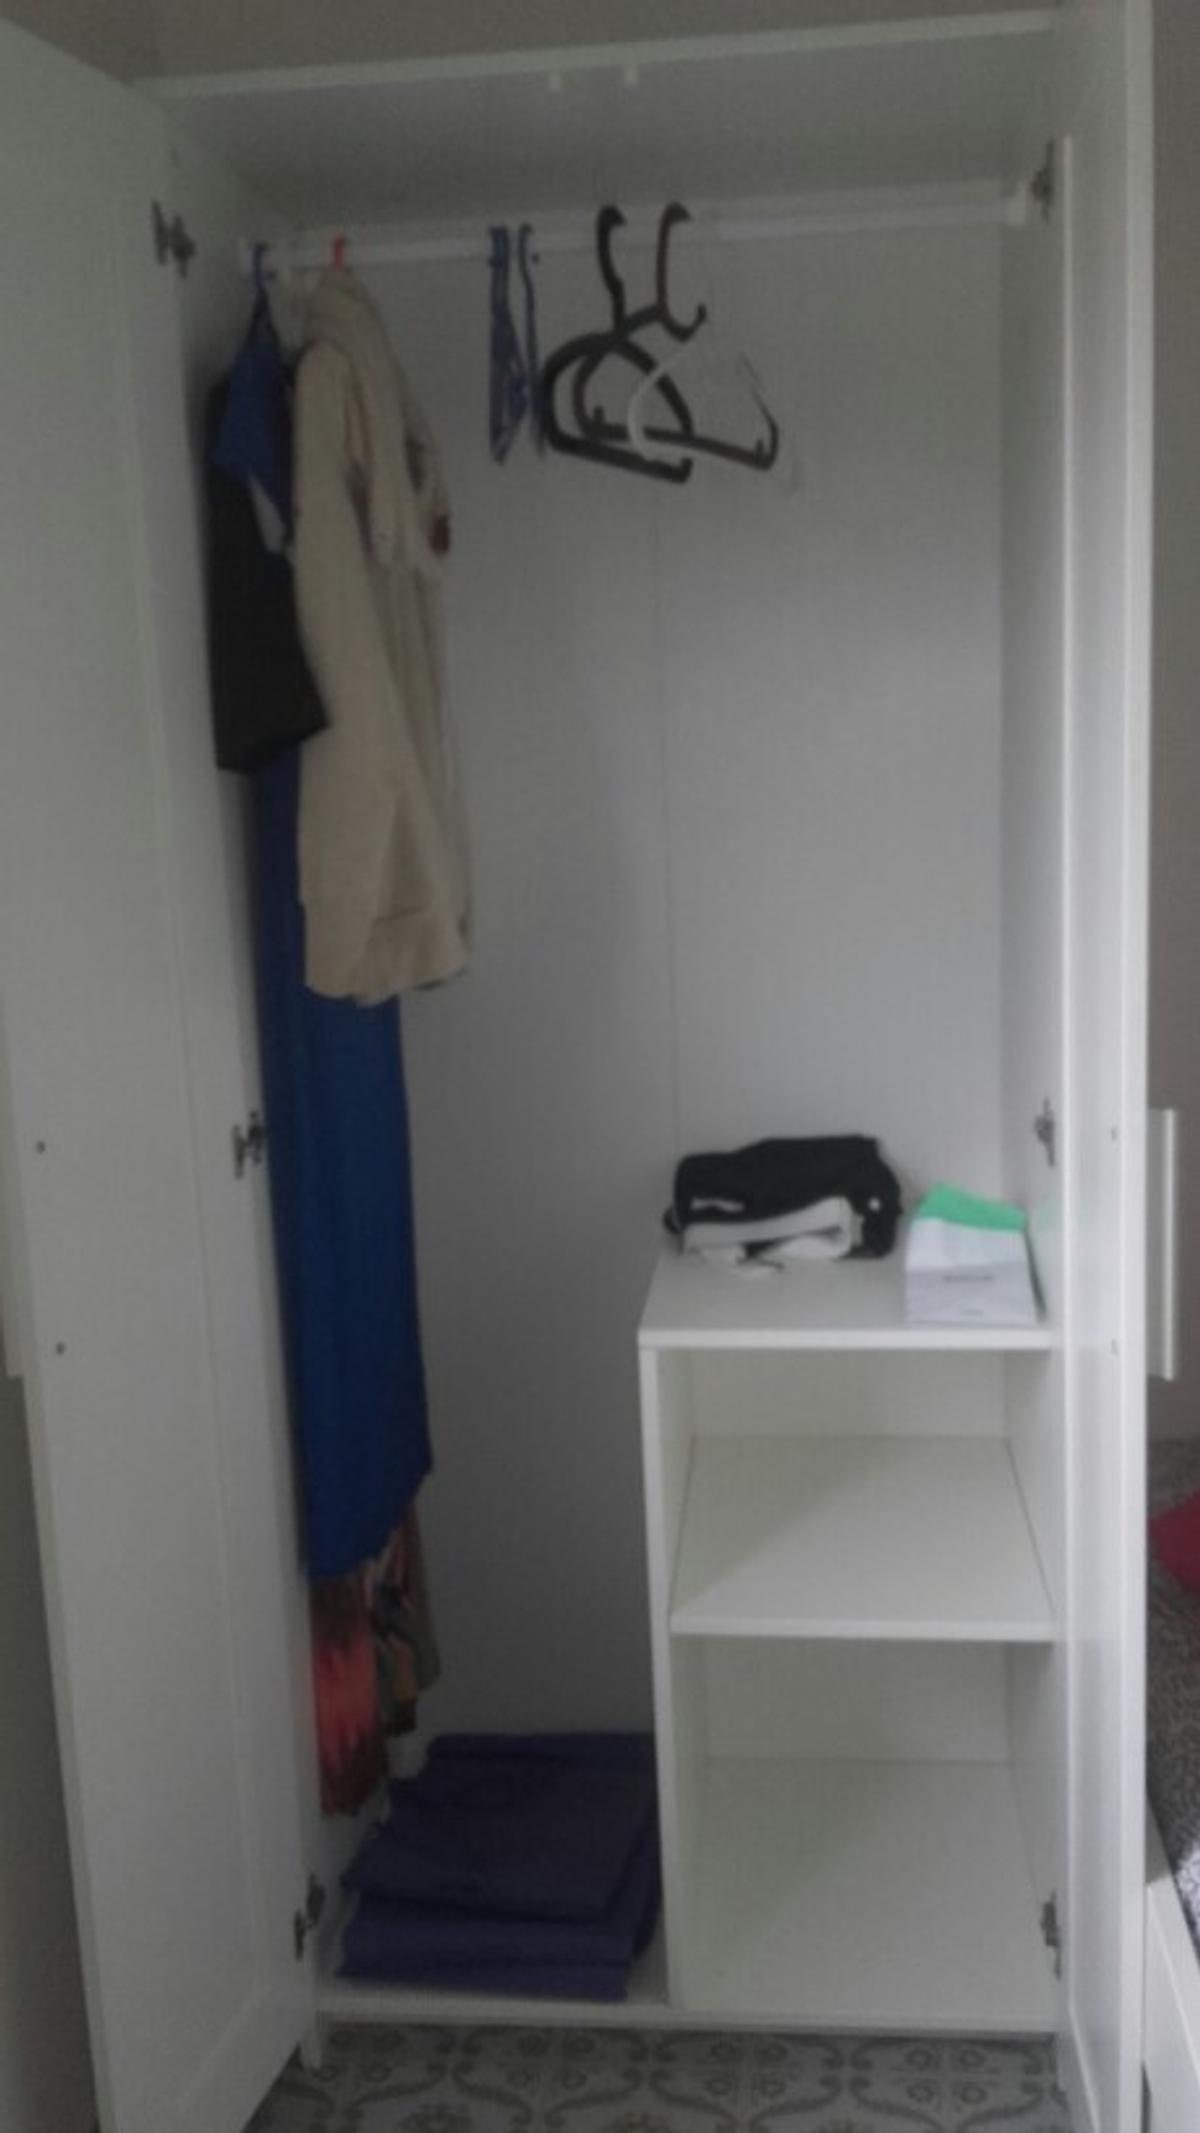 Armadio Ikea Brimnes 2 Ante.Armadio Ikea Brimnes 2 Ante In 40133 Bologna For 40 00 For Sale